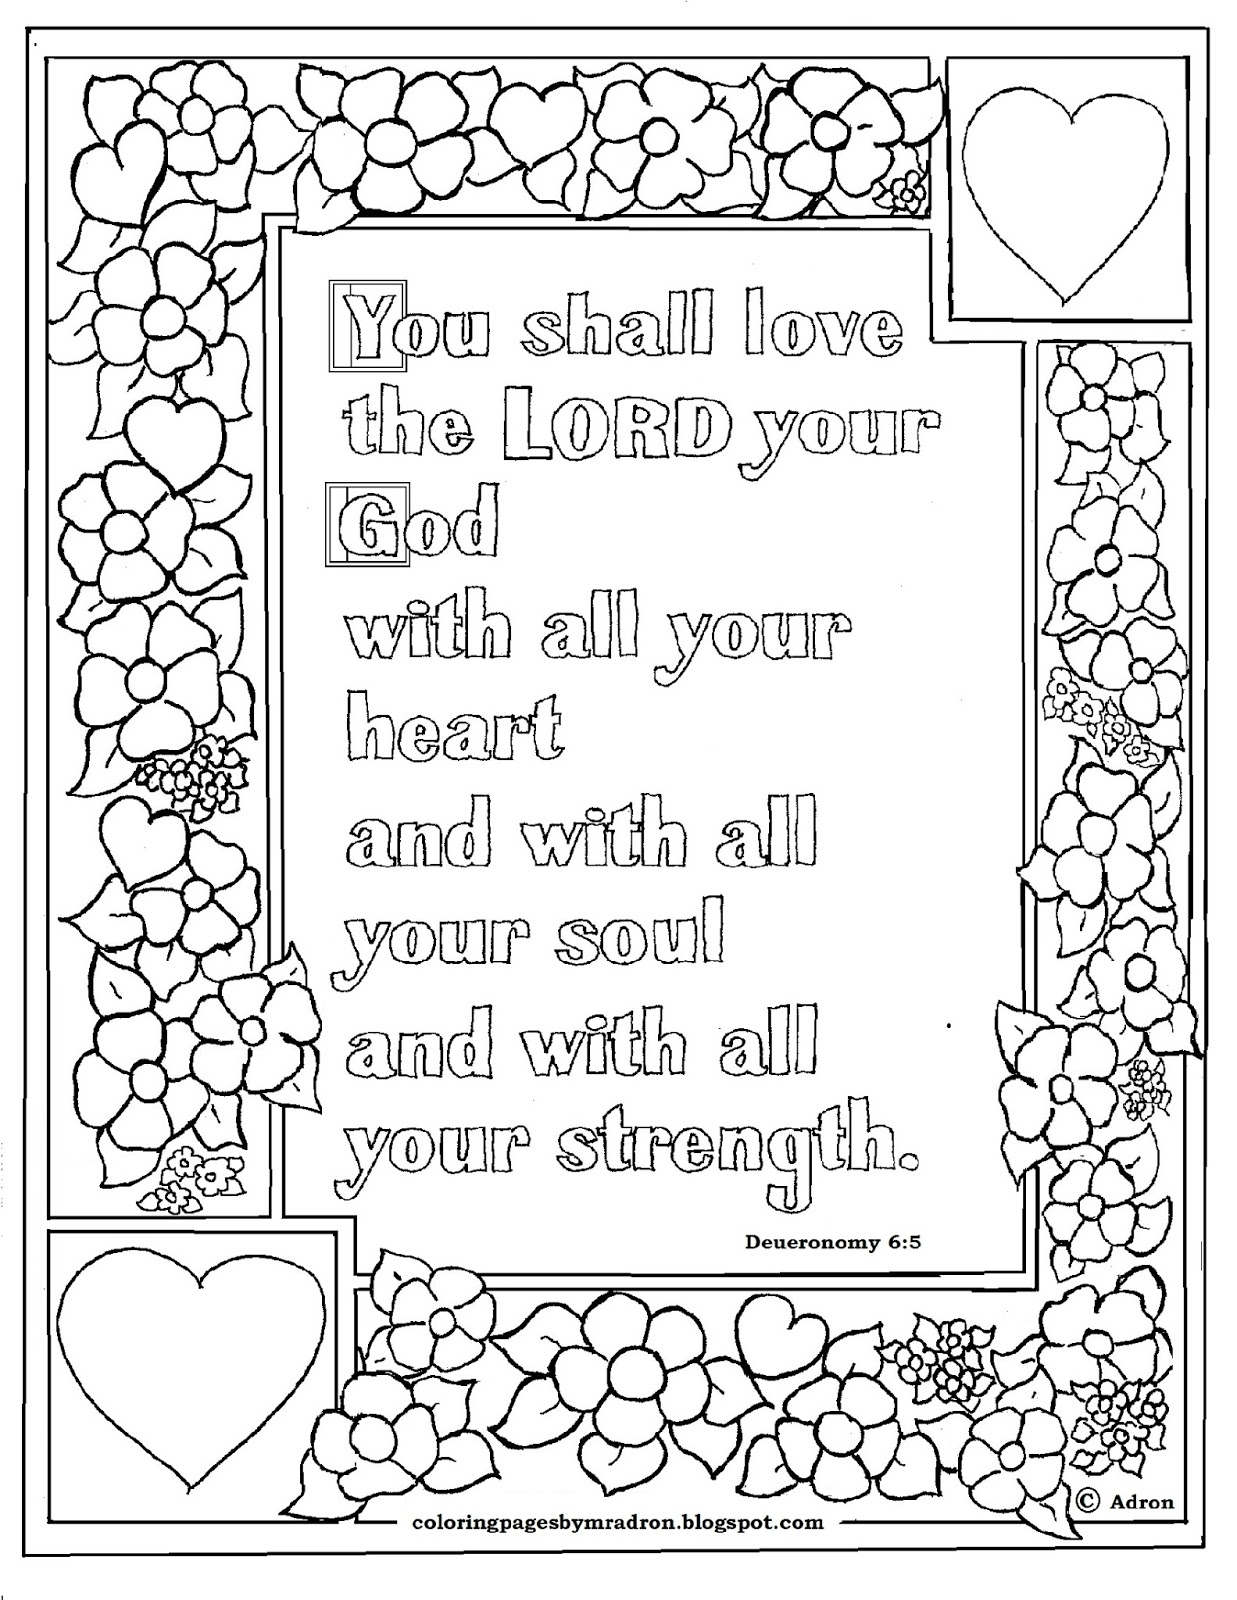 Deuteronomy 6 5 Bible Verse to Print and Color This is A Free Collection Of Free Printable Adult Coloring Pages Hymns & Scripture Our Printable